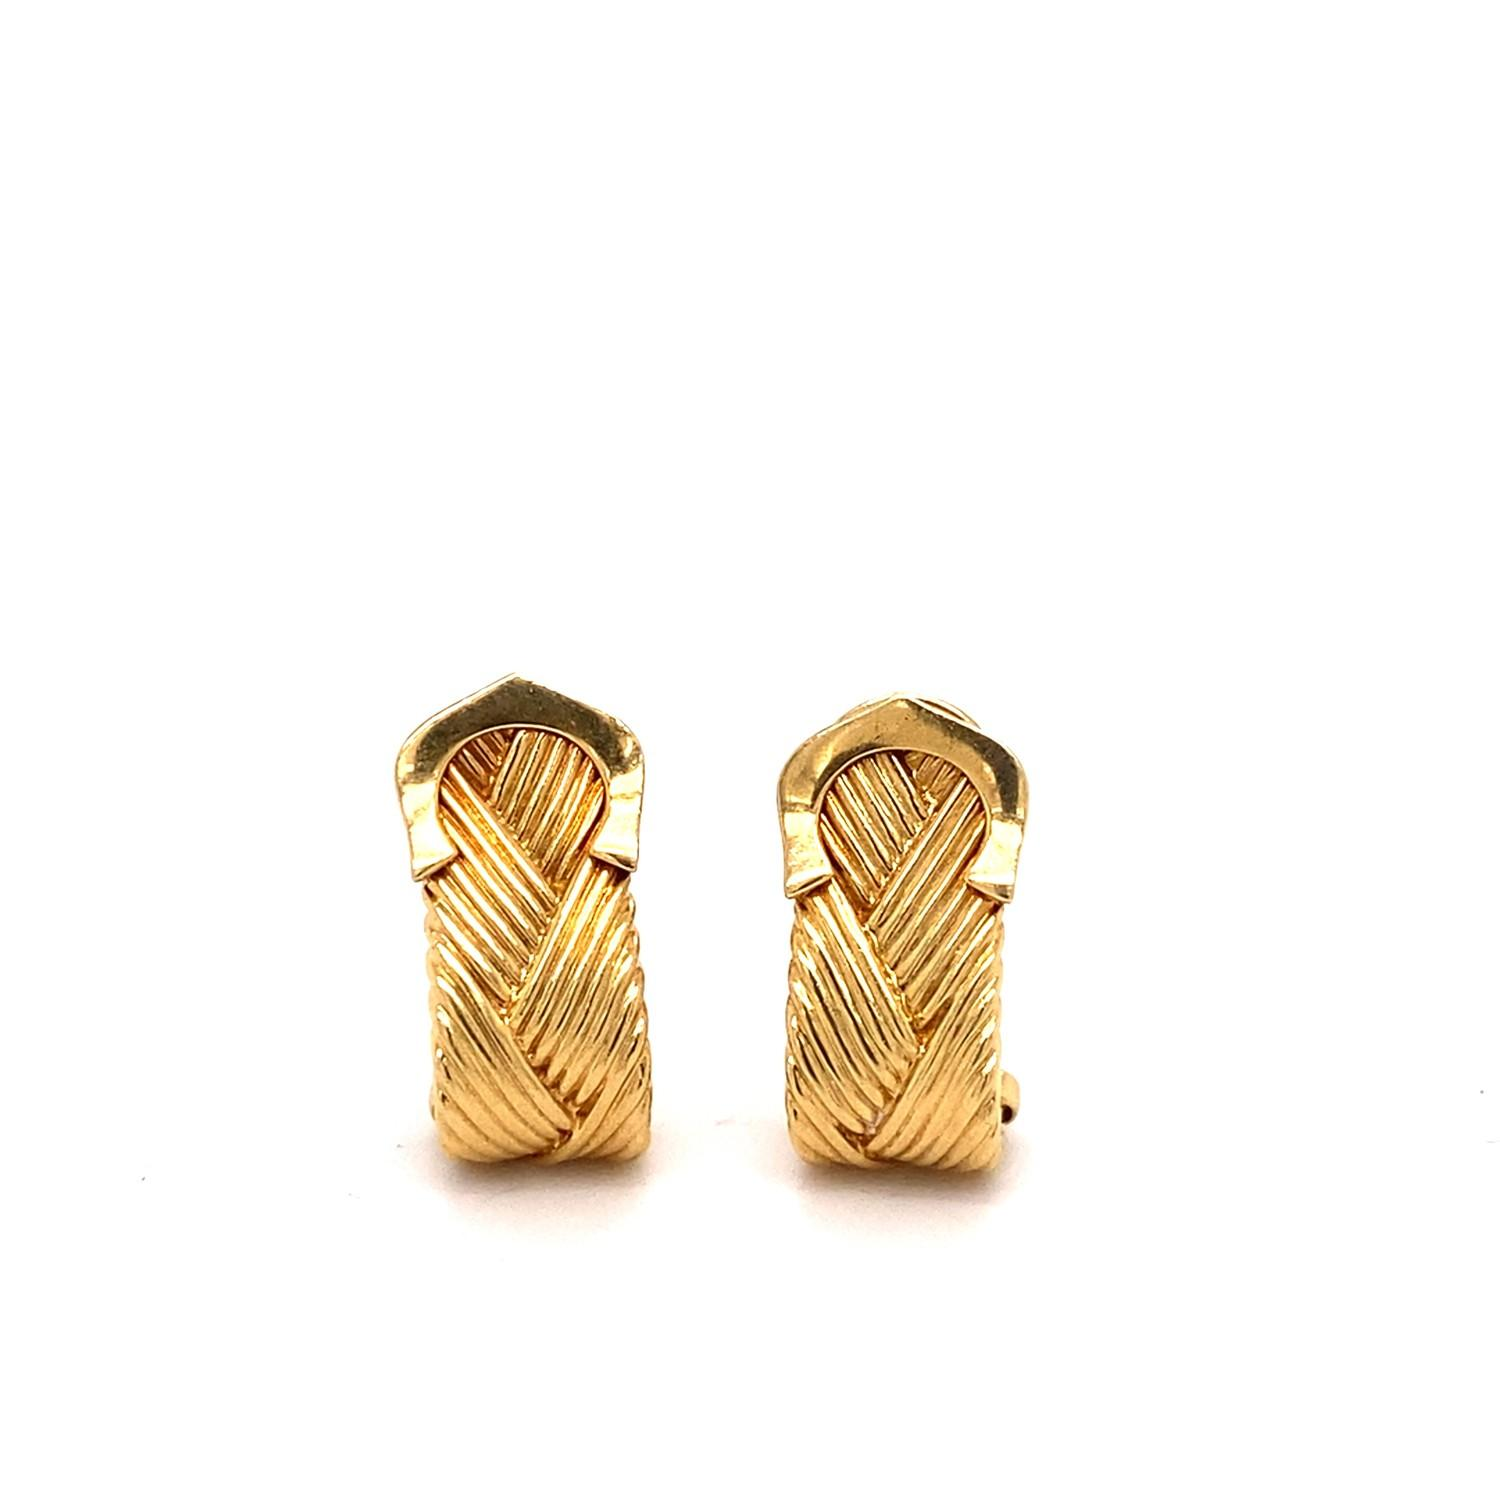 A pair of Vintage Cartier crossed C's textured yellow gold ear clips, mounted in 18ct yellow gold. - Image 2 of 2